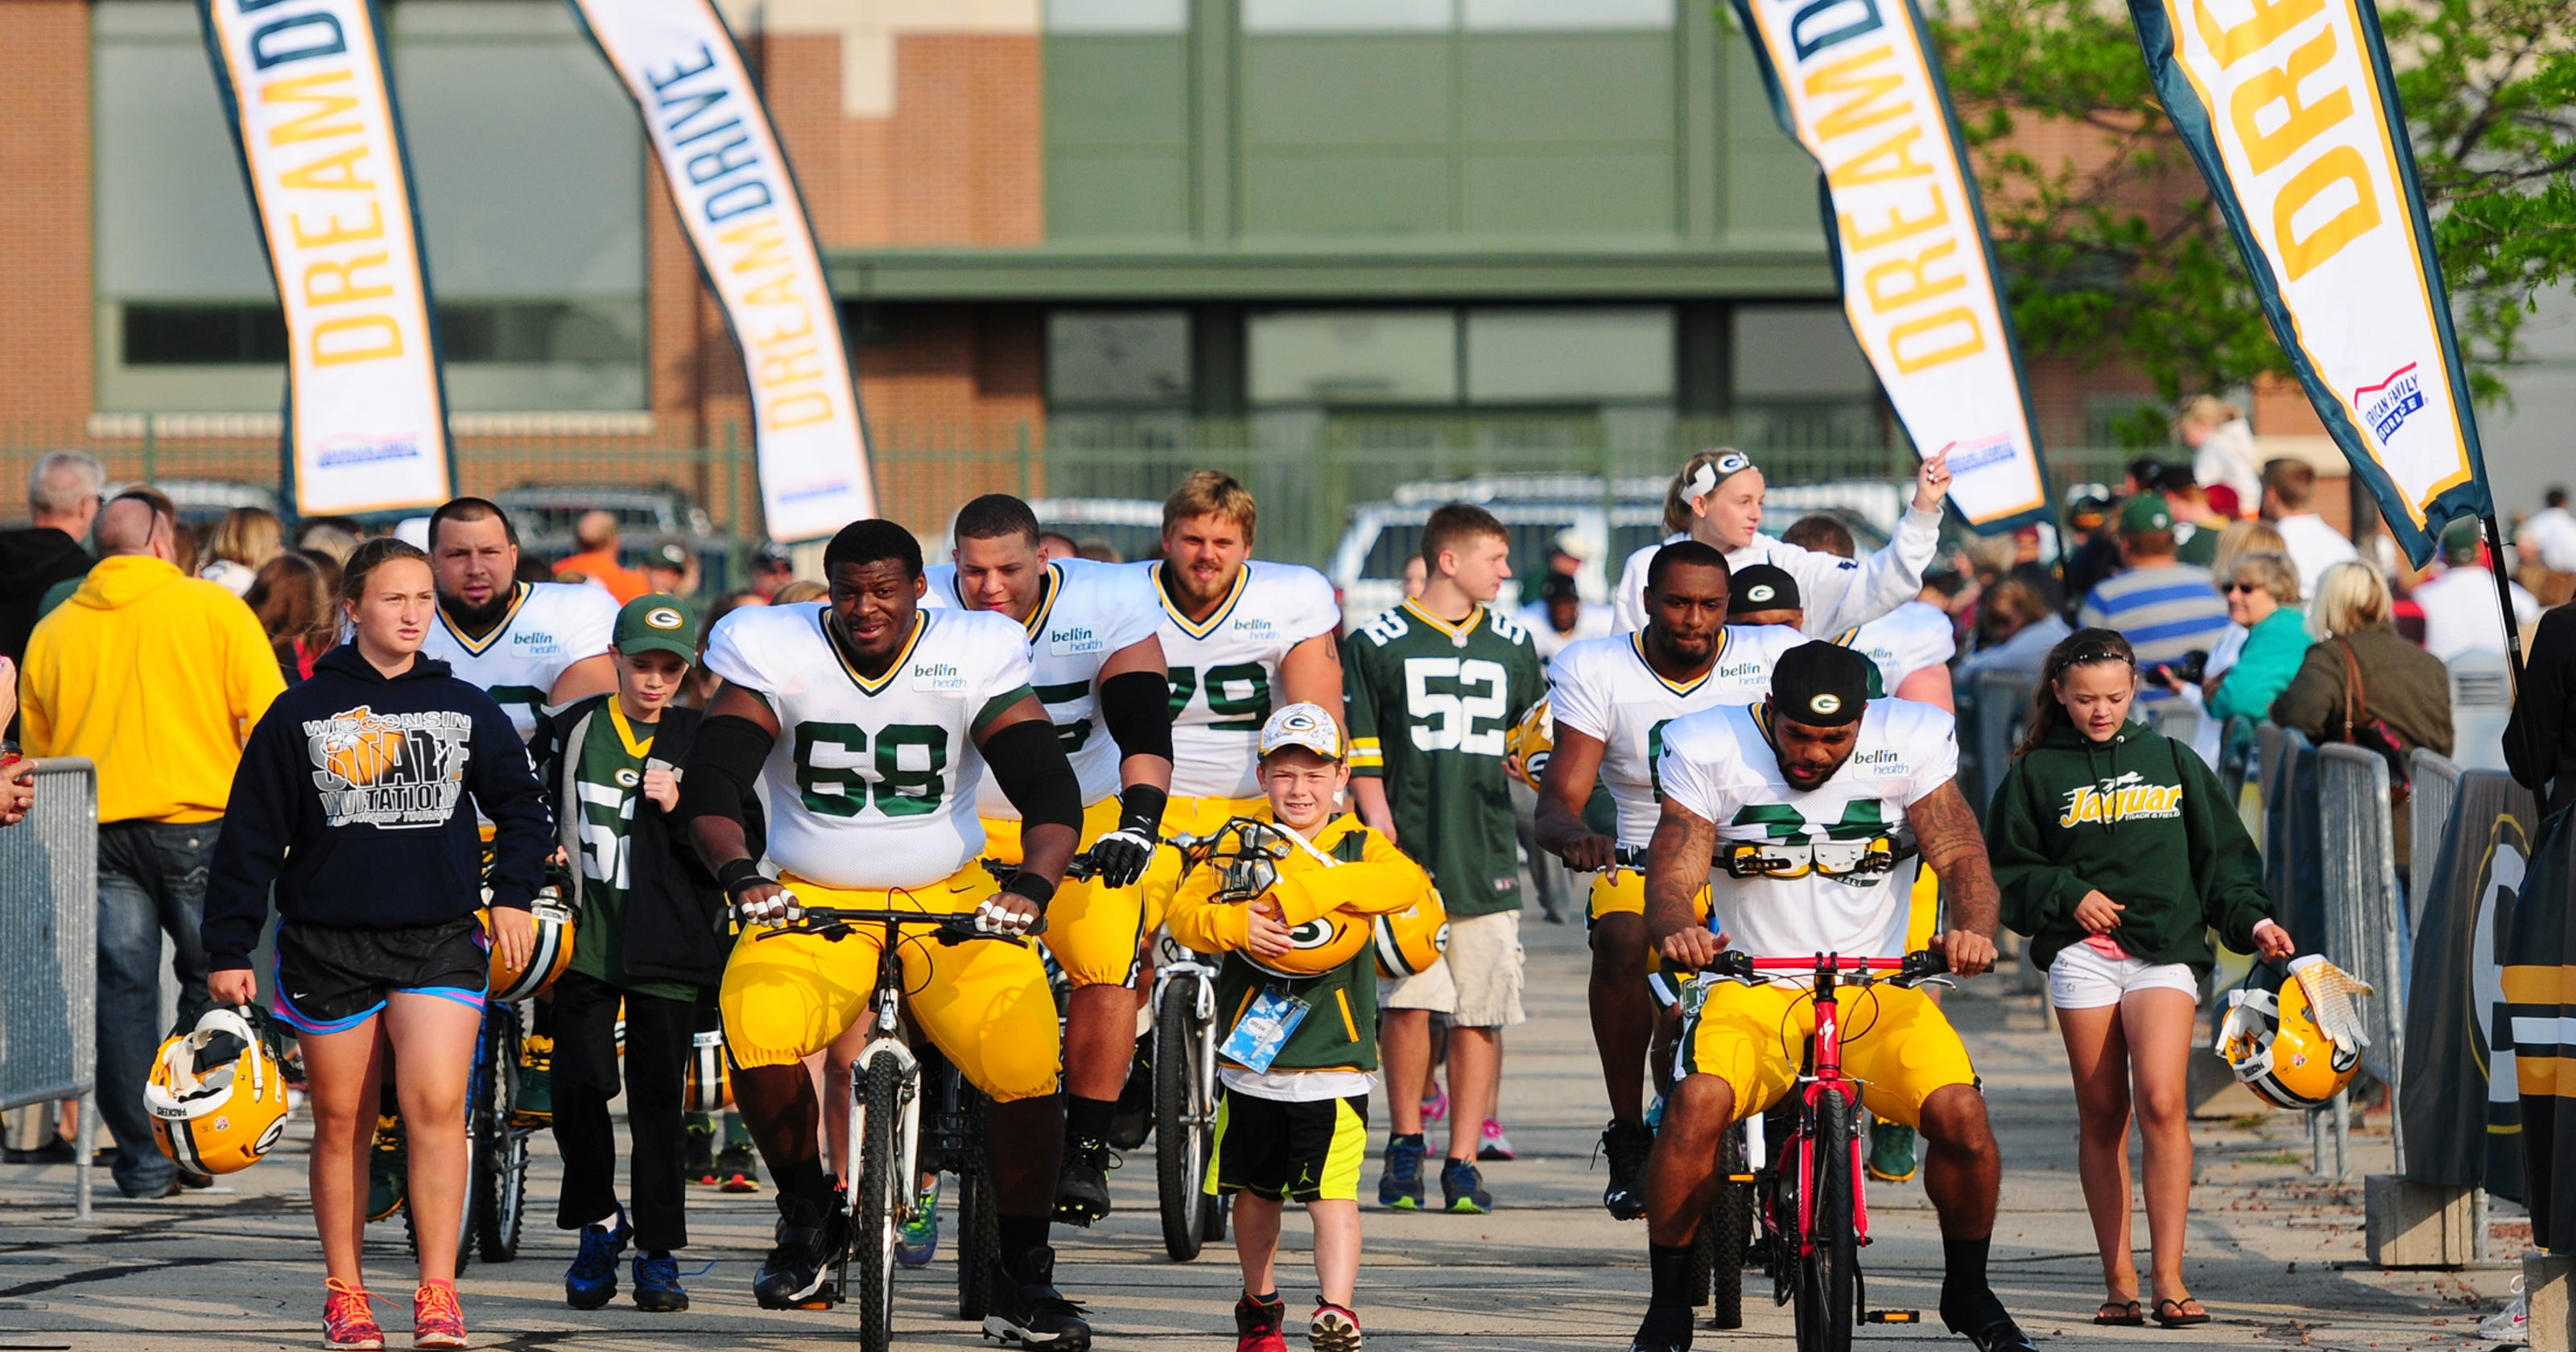 dda024e7 Kids carry on Packers bike ride tradition